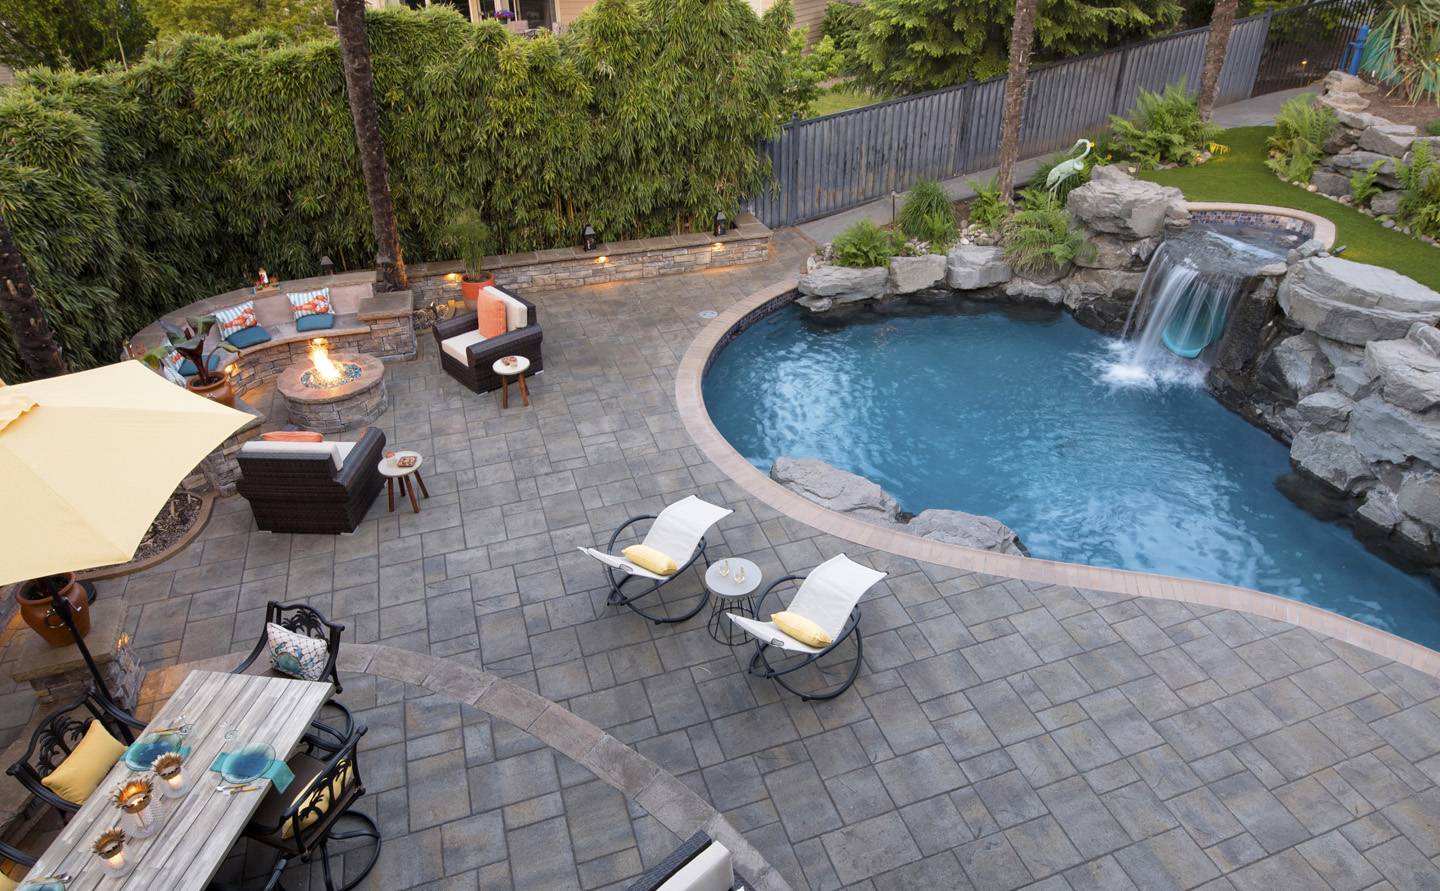 Inground Pool Backyard Design Paradise Restored Landscaping